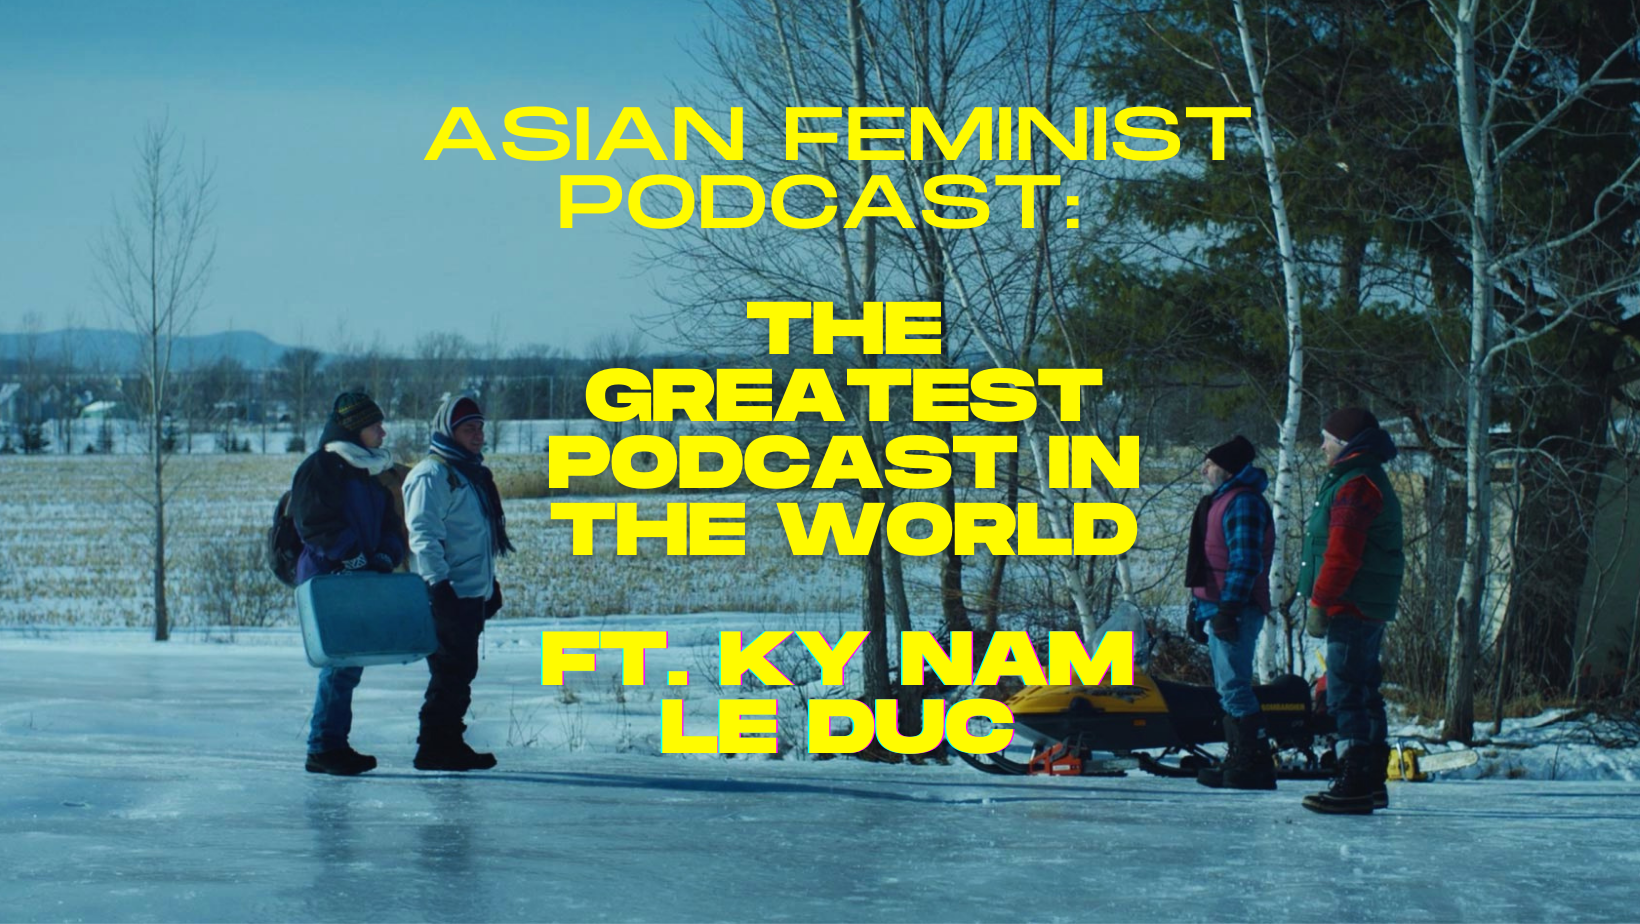 A film still from GREATEST COUNTRY IN THE WORLD. Two characters stand on the left facing two characters on the right. They are all dressed in multi-layered winter clothing and are standing on a frozen lake. Overlaid upon the image is the text: ASIAN FEMINIST PODCAST: THE GREATEST PODCAST IN THE WORLD FT. KY NAM LE DUC.